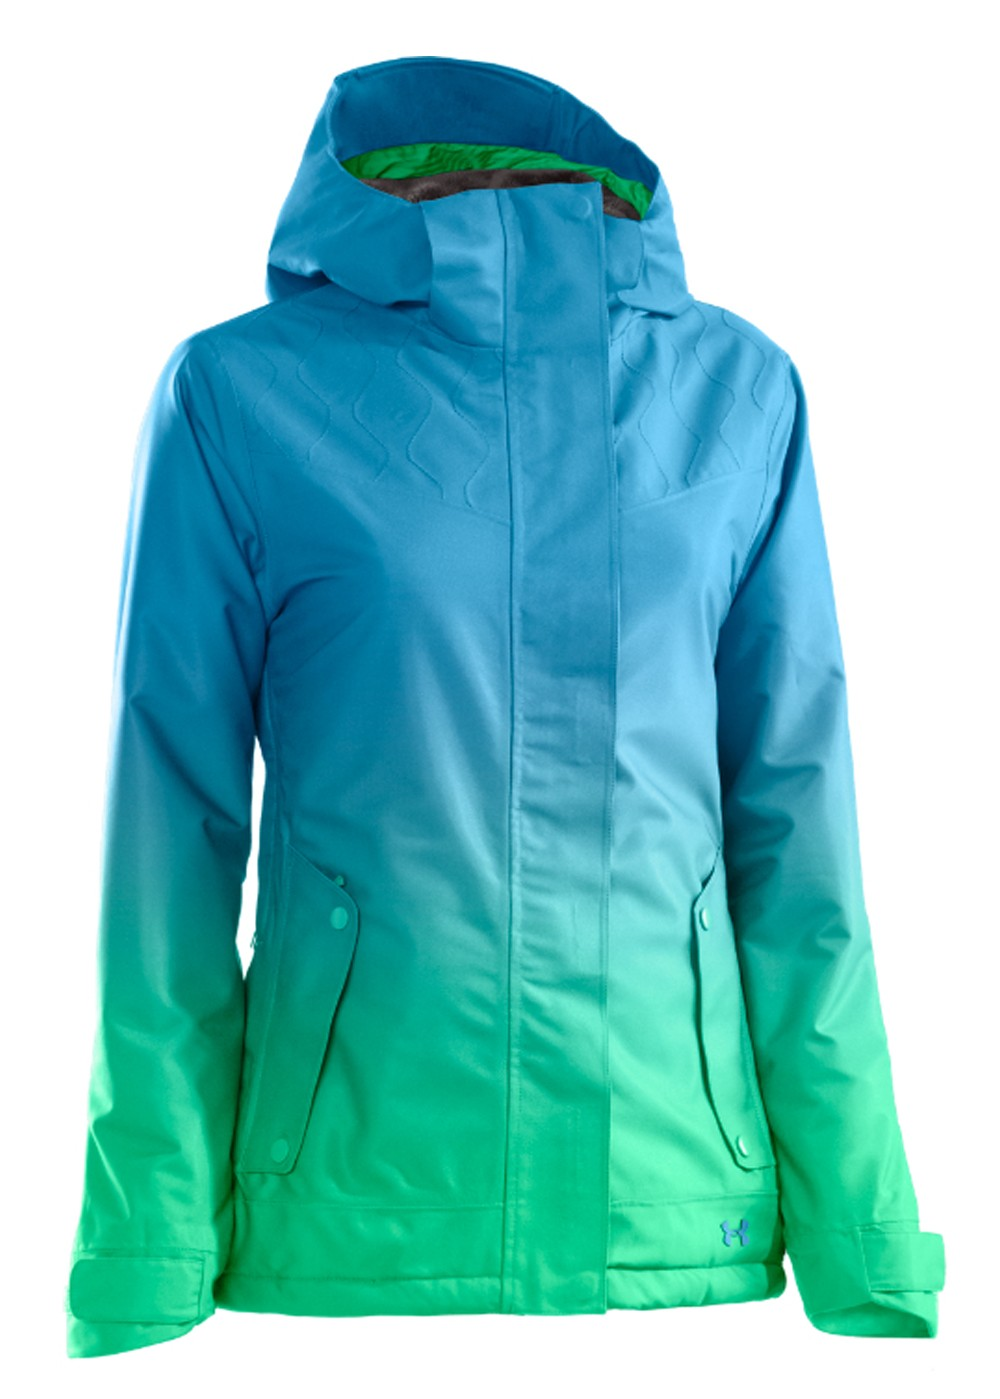 Buy Under Armour Coats Gt Off30 Discounted